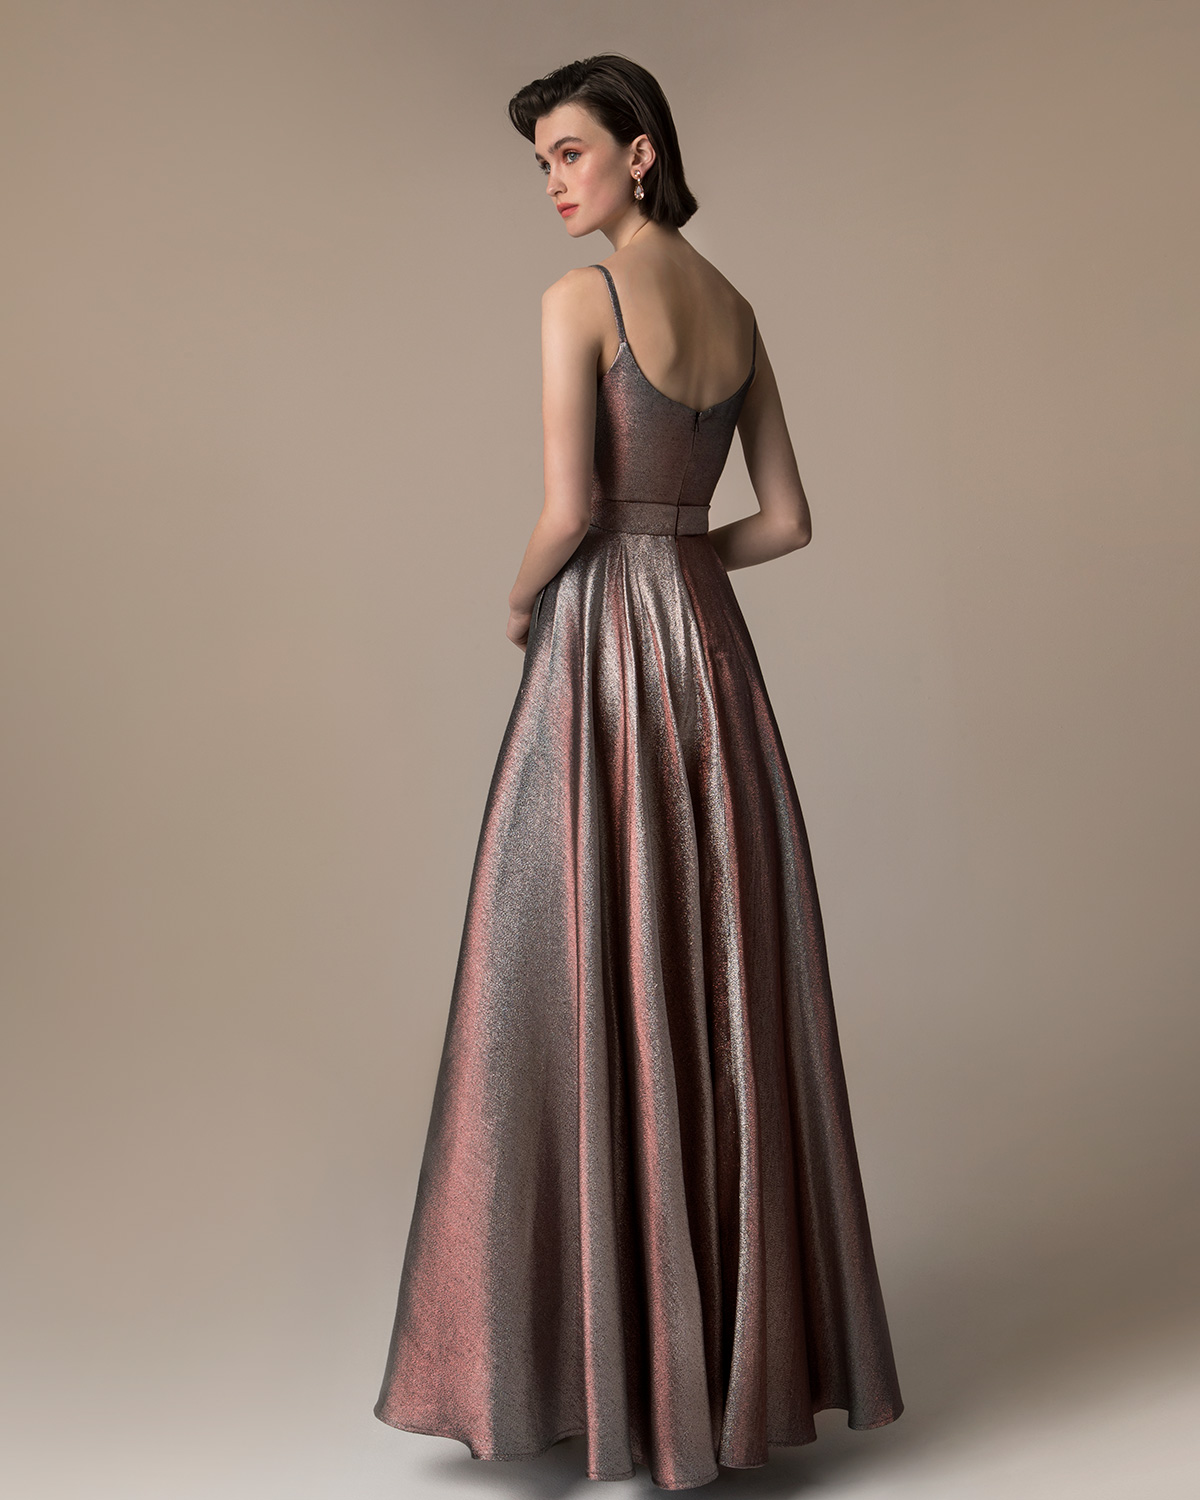 Evening Dresses / Long evening dress with a bow and shining fabric